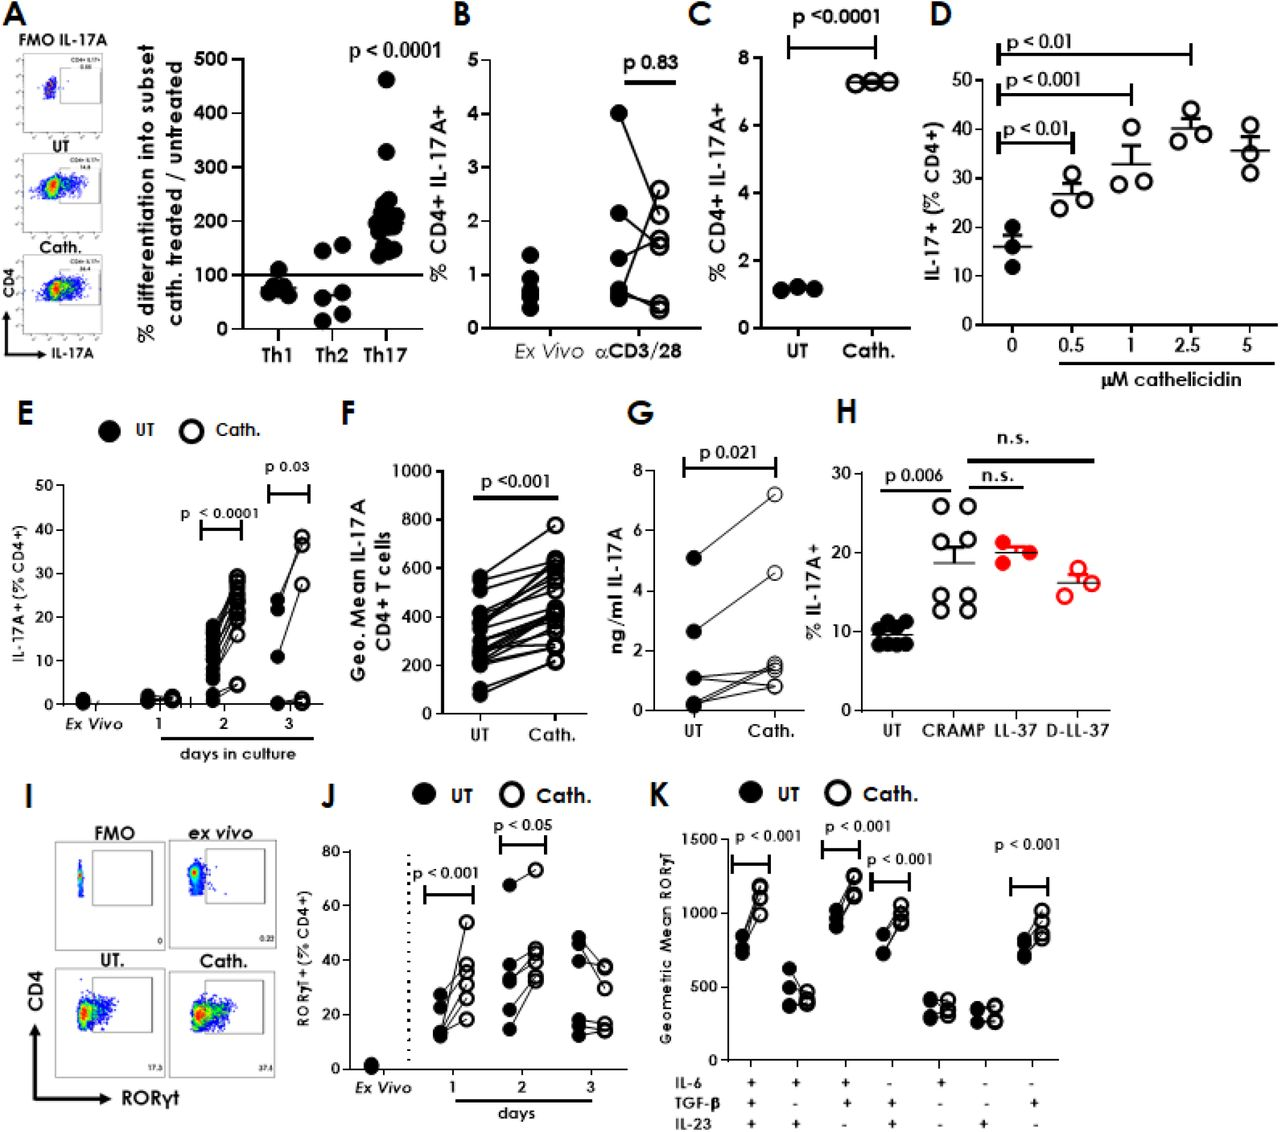 The antimicrobial peptide cathelicidin induces IL-17 production by CD4 + T cells. Splenocytes isolated from C57BL/6J mice were cultured in Th1-driving conditions for 4 days, Th2-driving for 4 days or Th17-driving for 2 days in the presence or absence of 2.5μM murine cathelicidin. (A,B) Expression of <t>cytokines</t> was determined by intracellular flow cytometry. (C) sorted CD4 + T cells were cultured alone in Th17-driving conditions with 2.5μM cathelicidin. (D) Production of IL-17A following increasing doses of cathelicidin (at 48 hours) and (E) production over increasing days in culture was assessed. (F) Geometric mean of IL-17A expression was also assessed on day 2 of culture. (G) After 3 days in culture the culture medium was collected and ELISA used to quantify IL-17A protein. (H) Alternative cathelicidins were used – human LL-37 and the D-enantiomer D-LL37. (I) Representative flow cytometry plots showing RORγt expression - (J) RORγt expression increased over time following cathelicidin exposure and (K) in the presence of TGF-β. Data shown are individual mice used in separate experiments, with line at median. Statistical significance was determined using a two-way repeated measures ANOVA with a Bonferroni multiple comparison post-test (E, J), a two-way ANOVA with Bonferroni correction (K), a paired t-test (B, C, F, G) or a one-way ANOVA with a Dunnett's multiple comparison post-test (D. H).